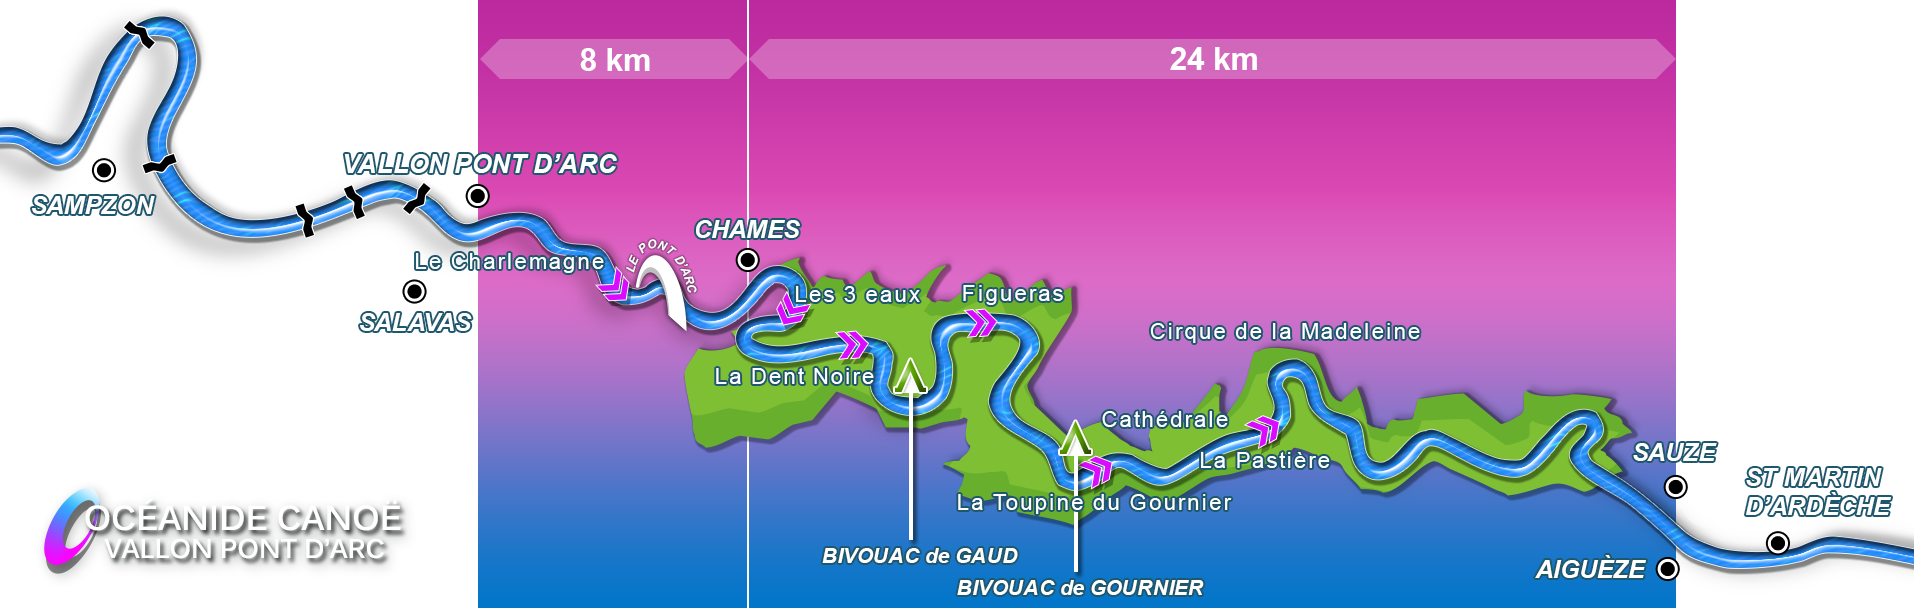 Descent map 8+24 km